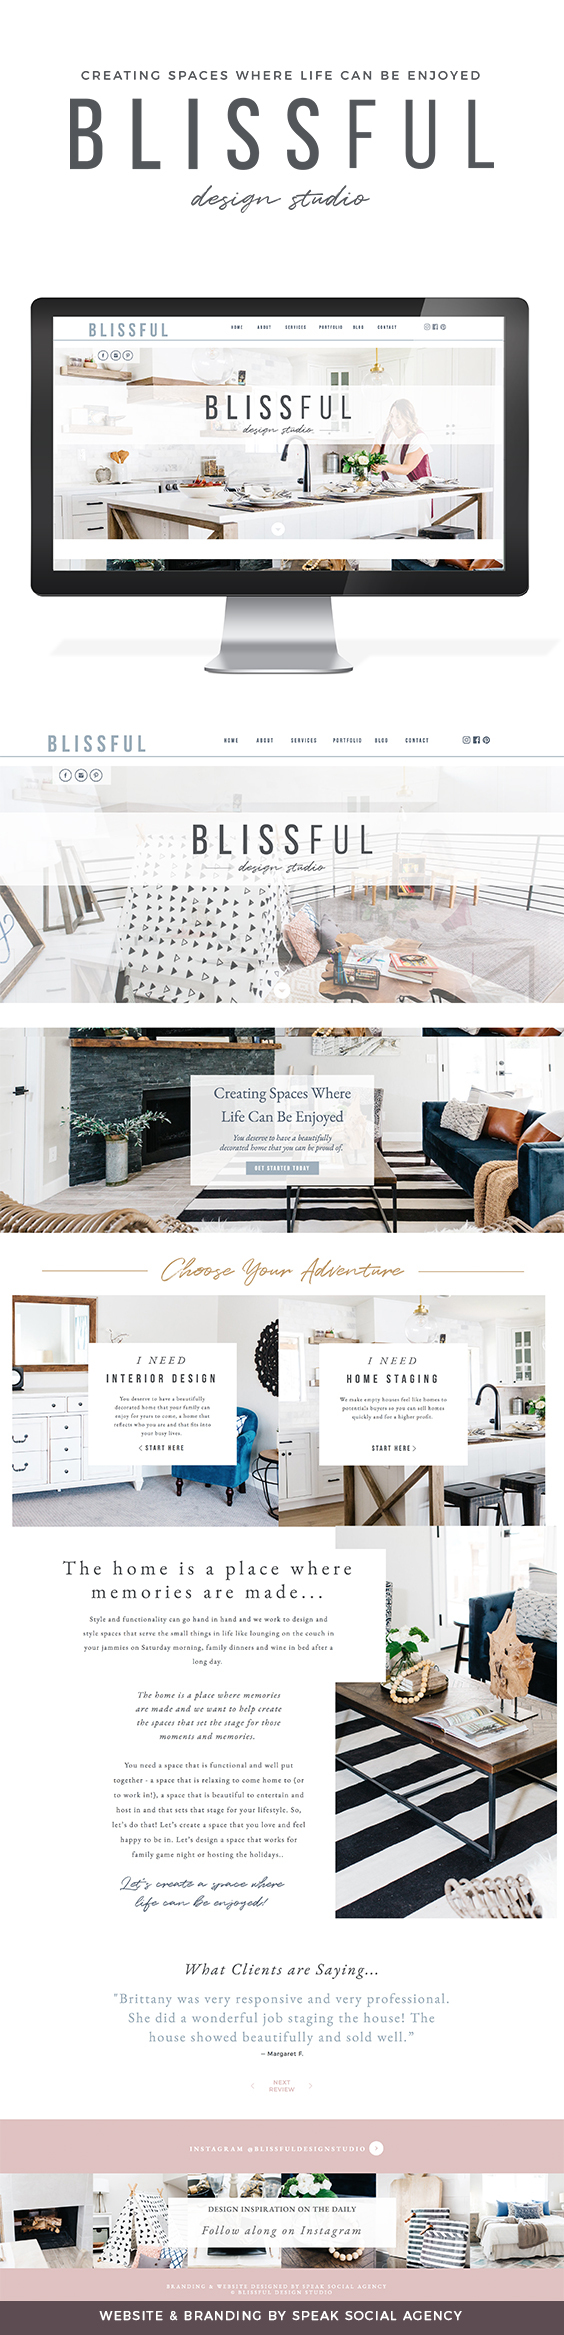 Blissful Design Studio Logo and Website by Speak Social - minimal, modern, chic interior design website. Showit website designs